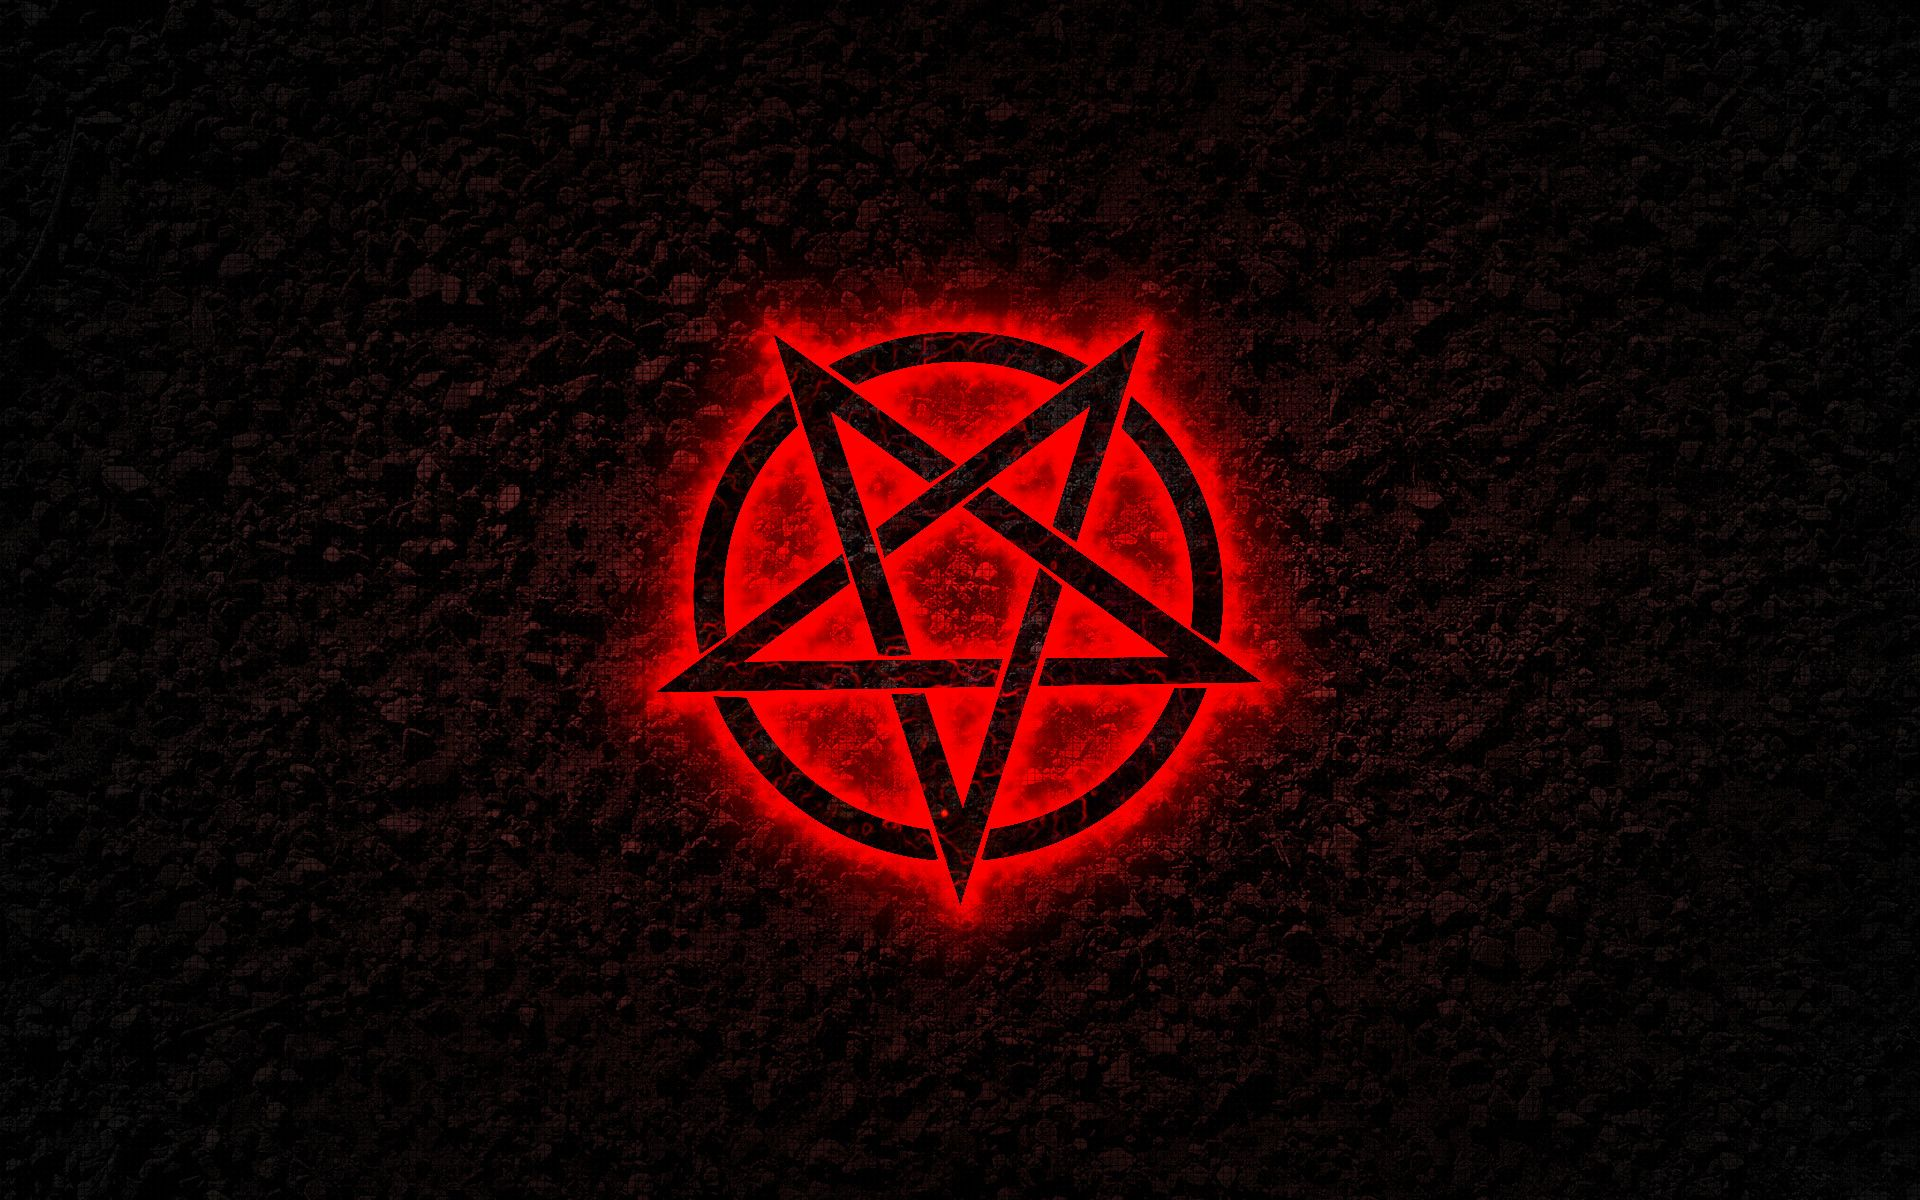 Satanic Pentagram Wallpaper 2 в 2019 г.